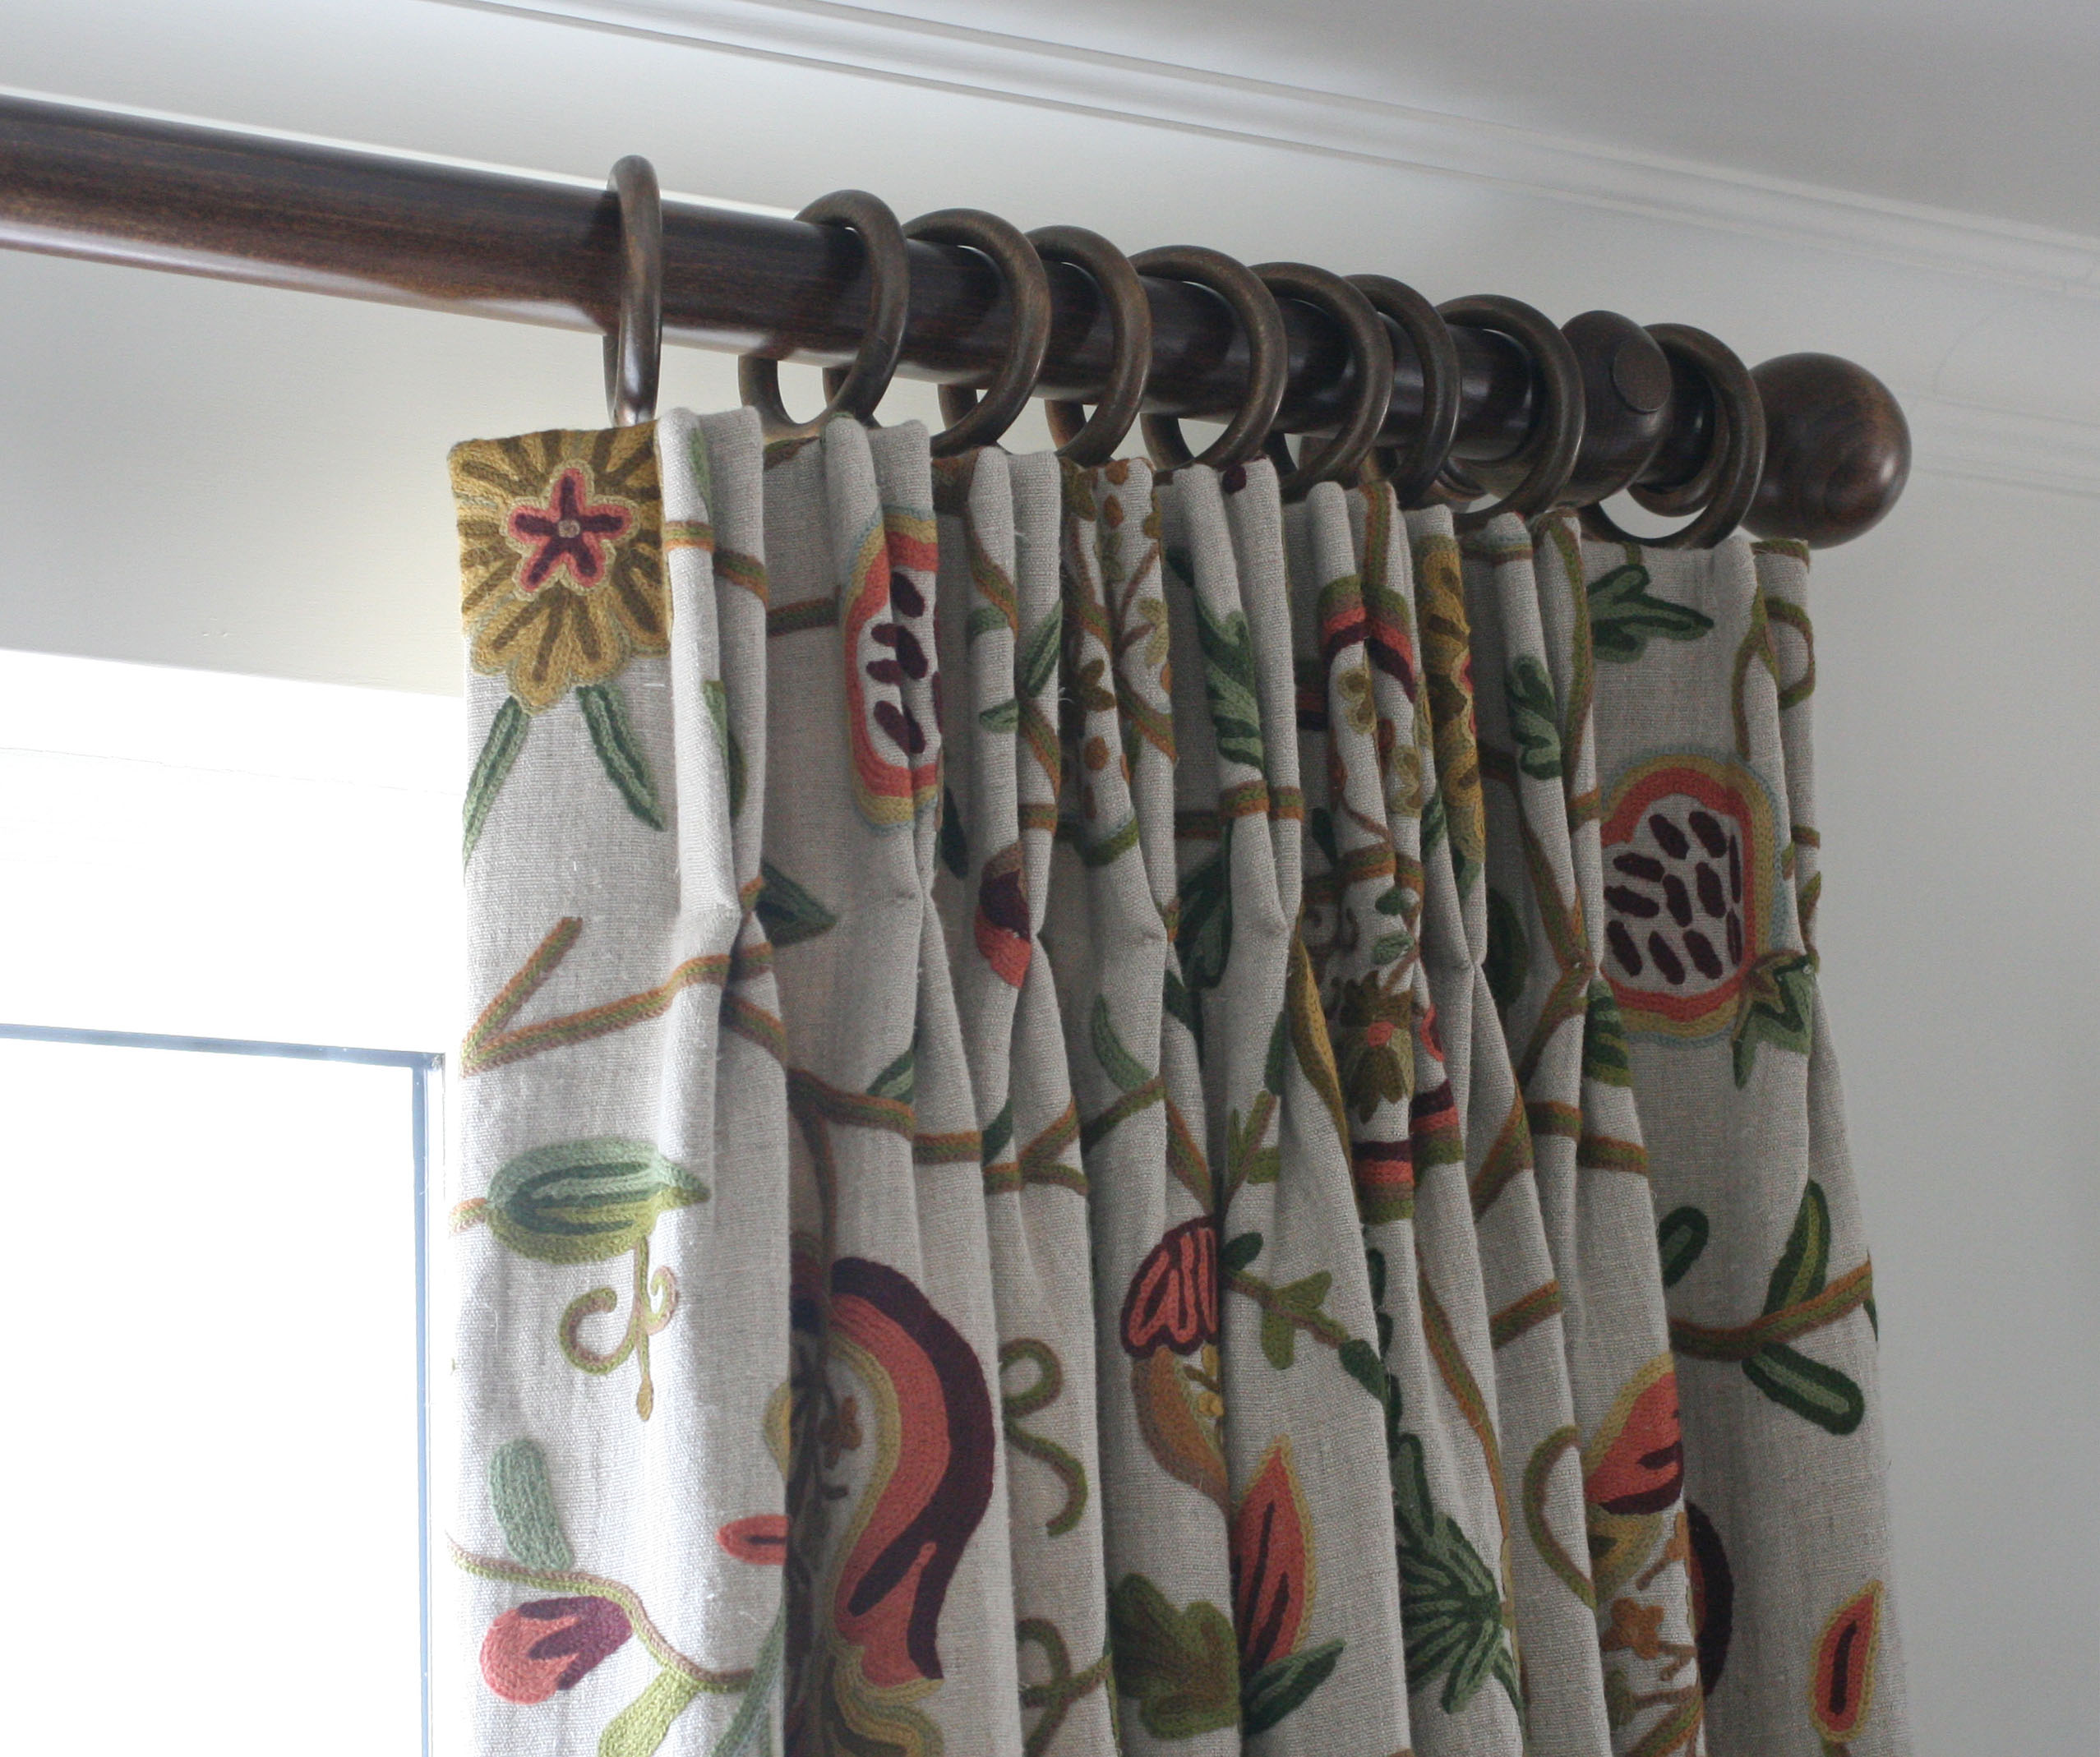 Embroidered Curtains | Embroidered Panel Curtains | Sheer Ikat Curtains